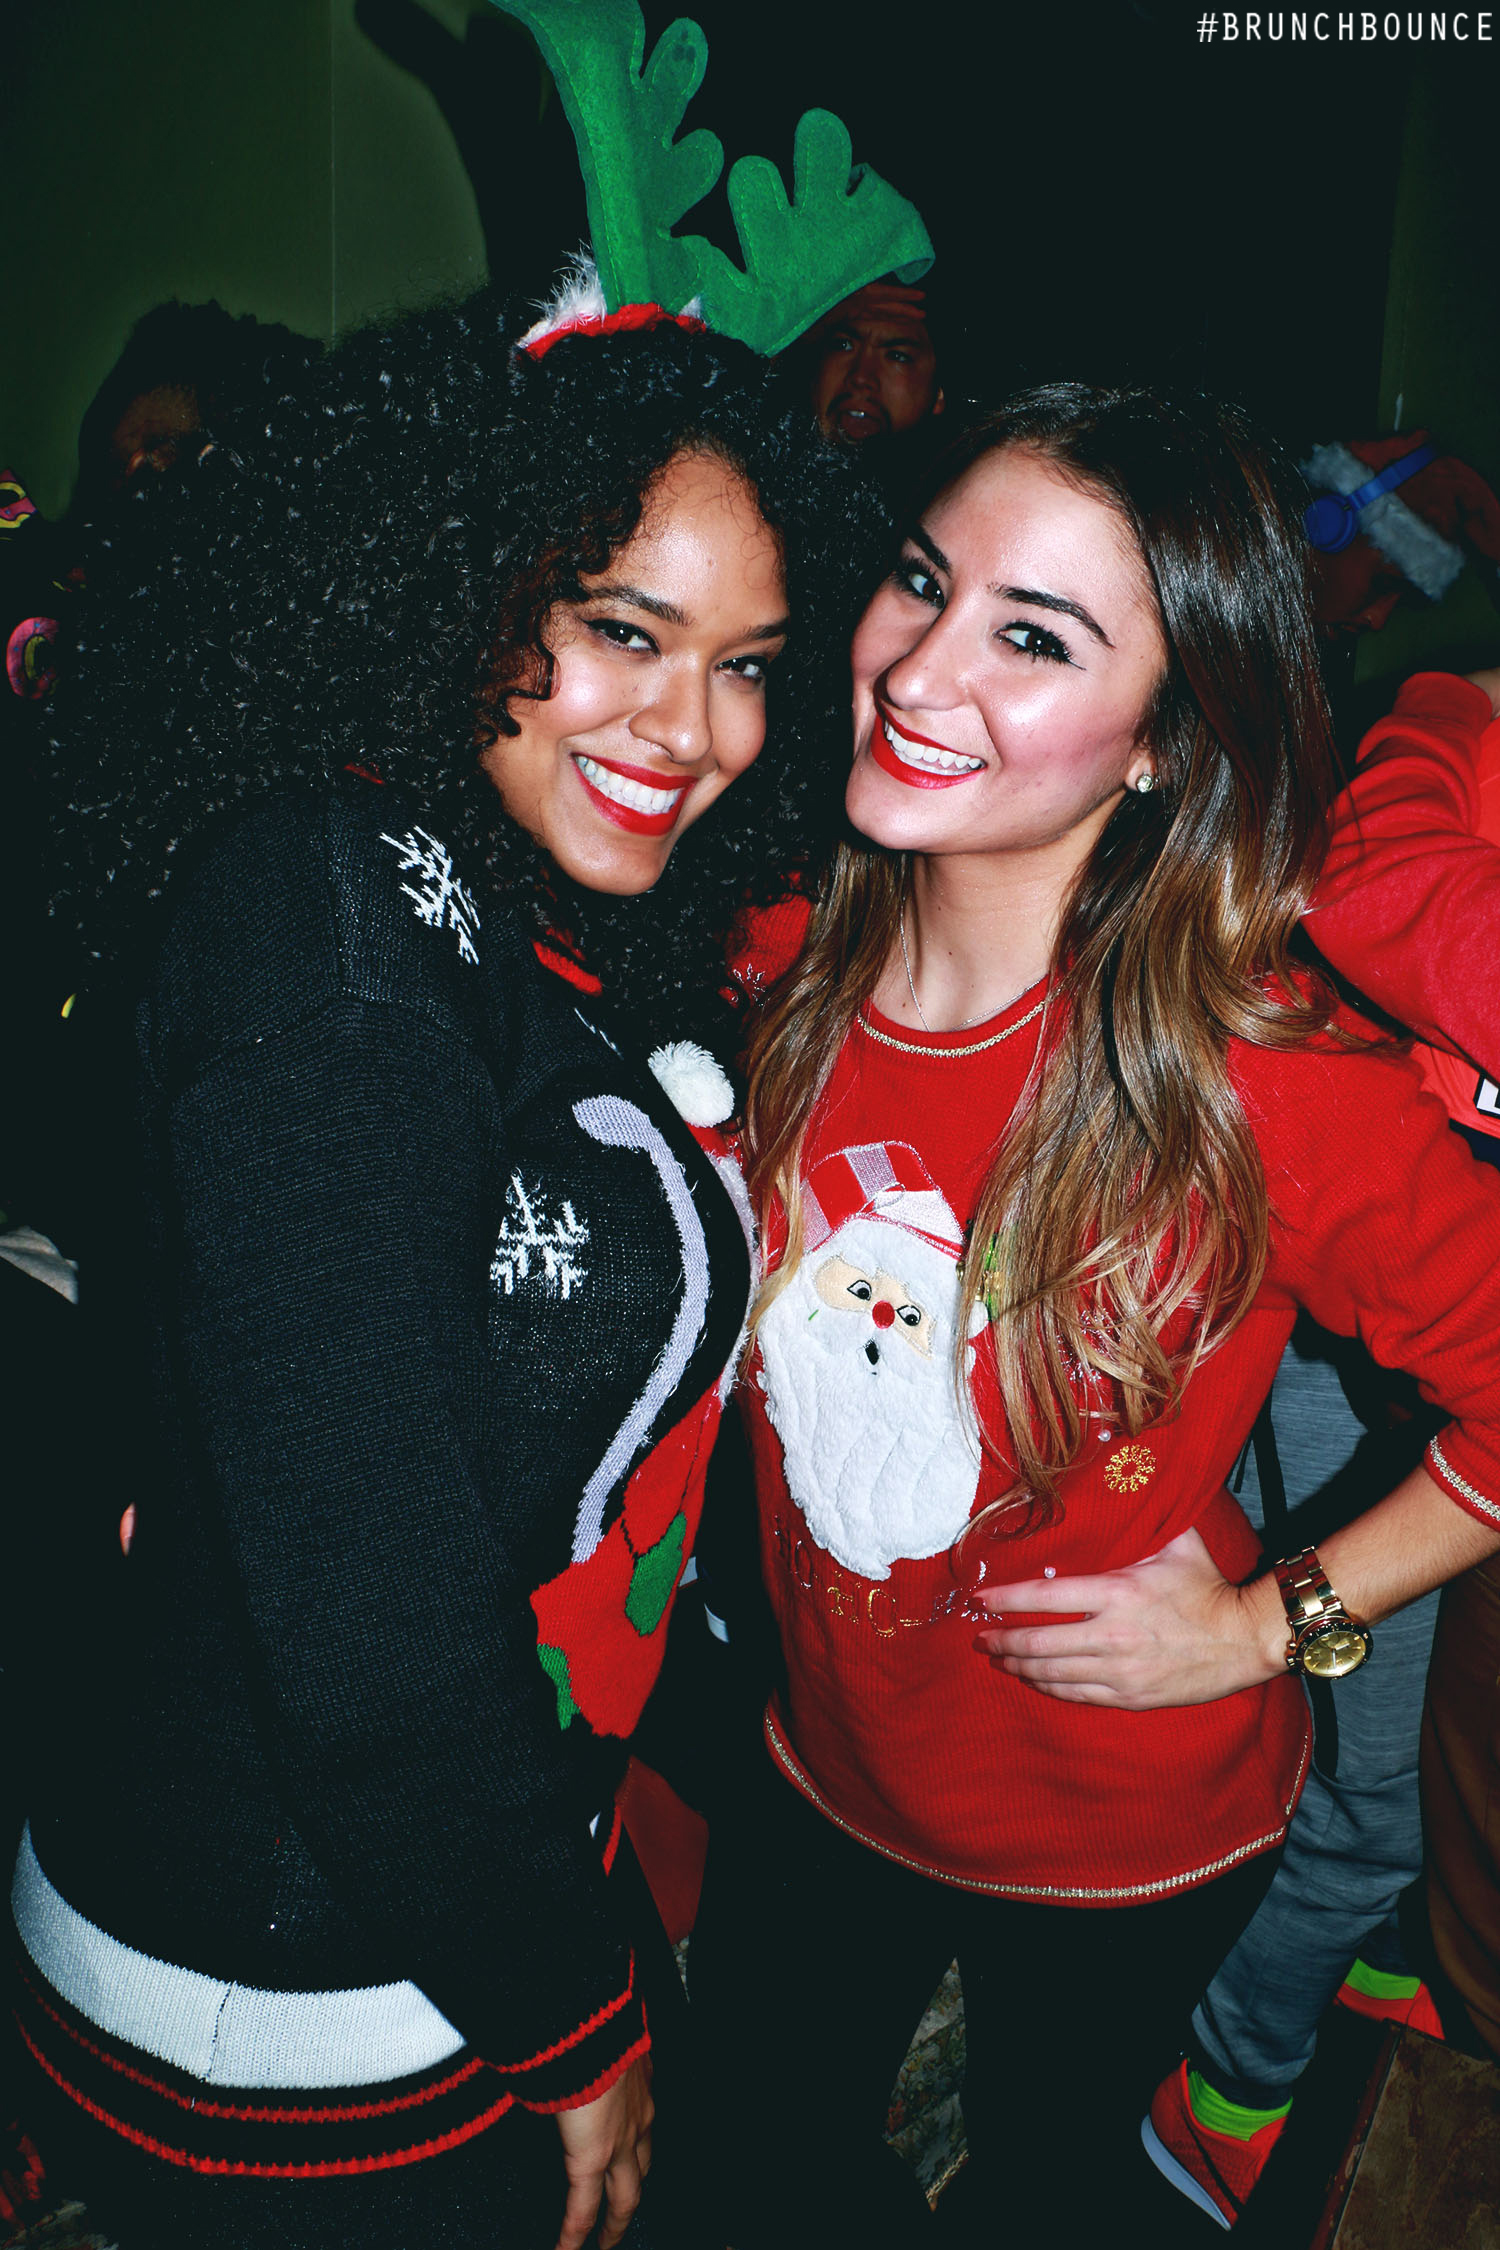 brunchbounce-ugly-christmas-sweater-party-122014_15895444490_o.jpg